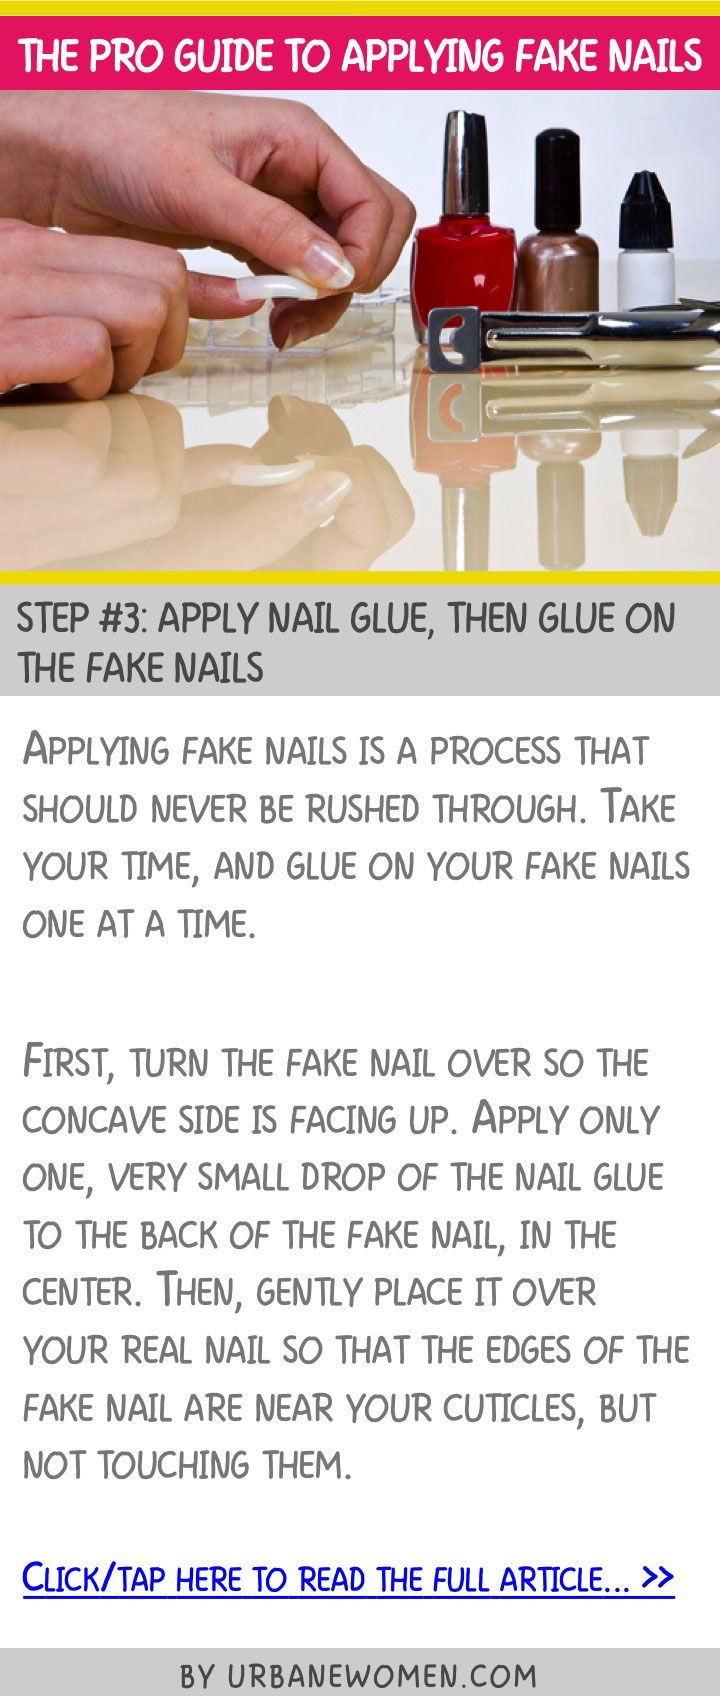 The pro guide to applying fake nails - Step #3: Apply nail glue, then glue on the fake nails